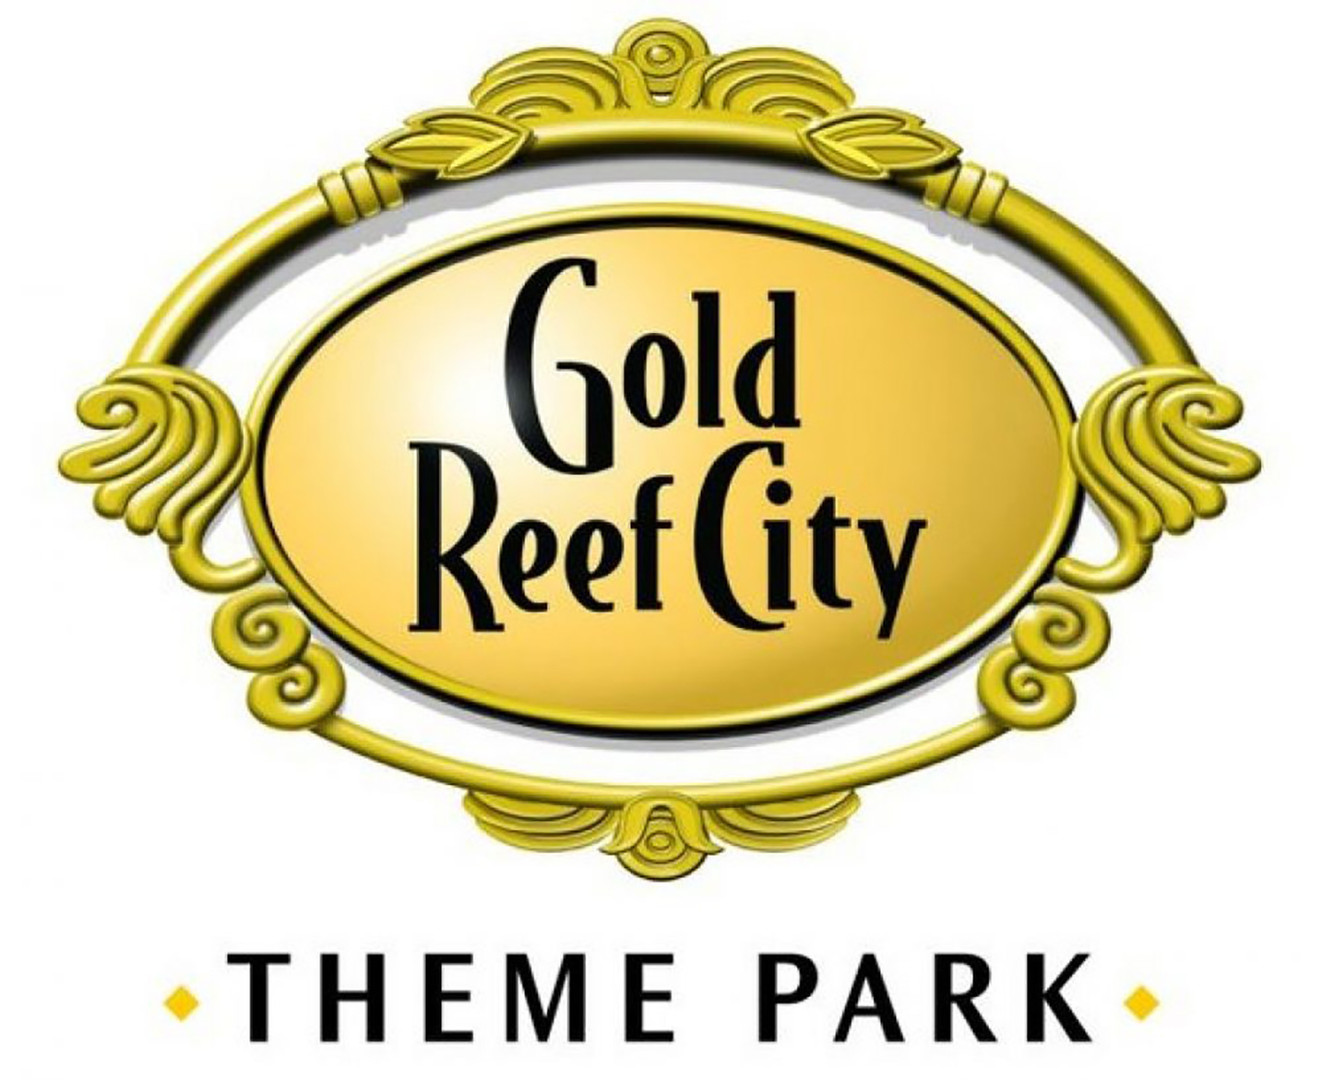 GoldReefCitylogo-3794540768.jpg